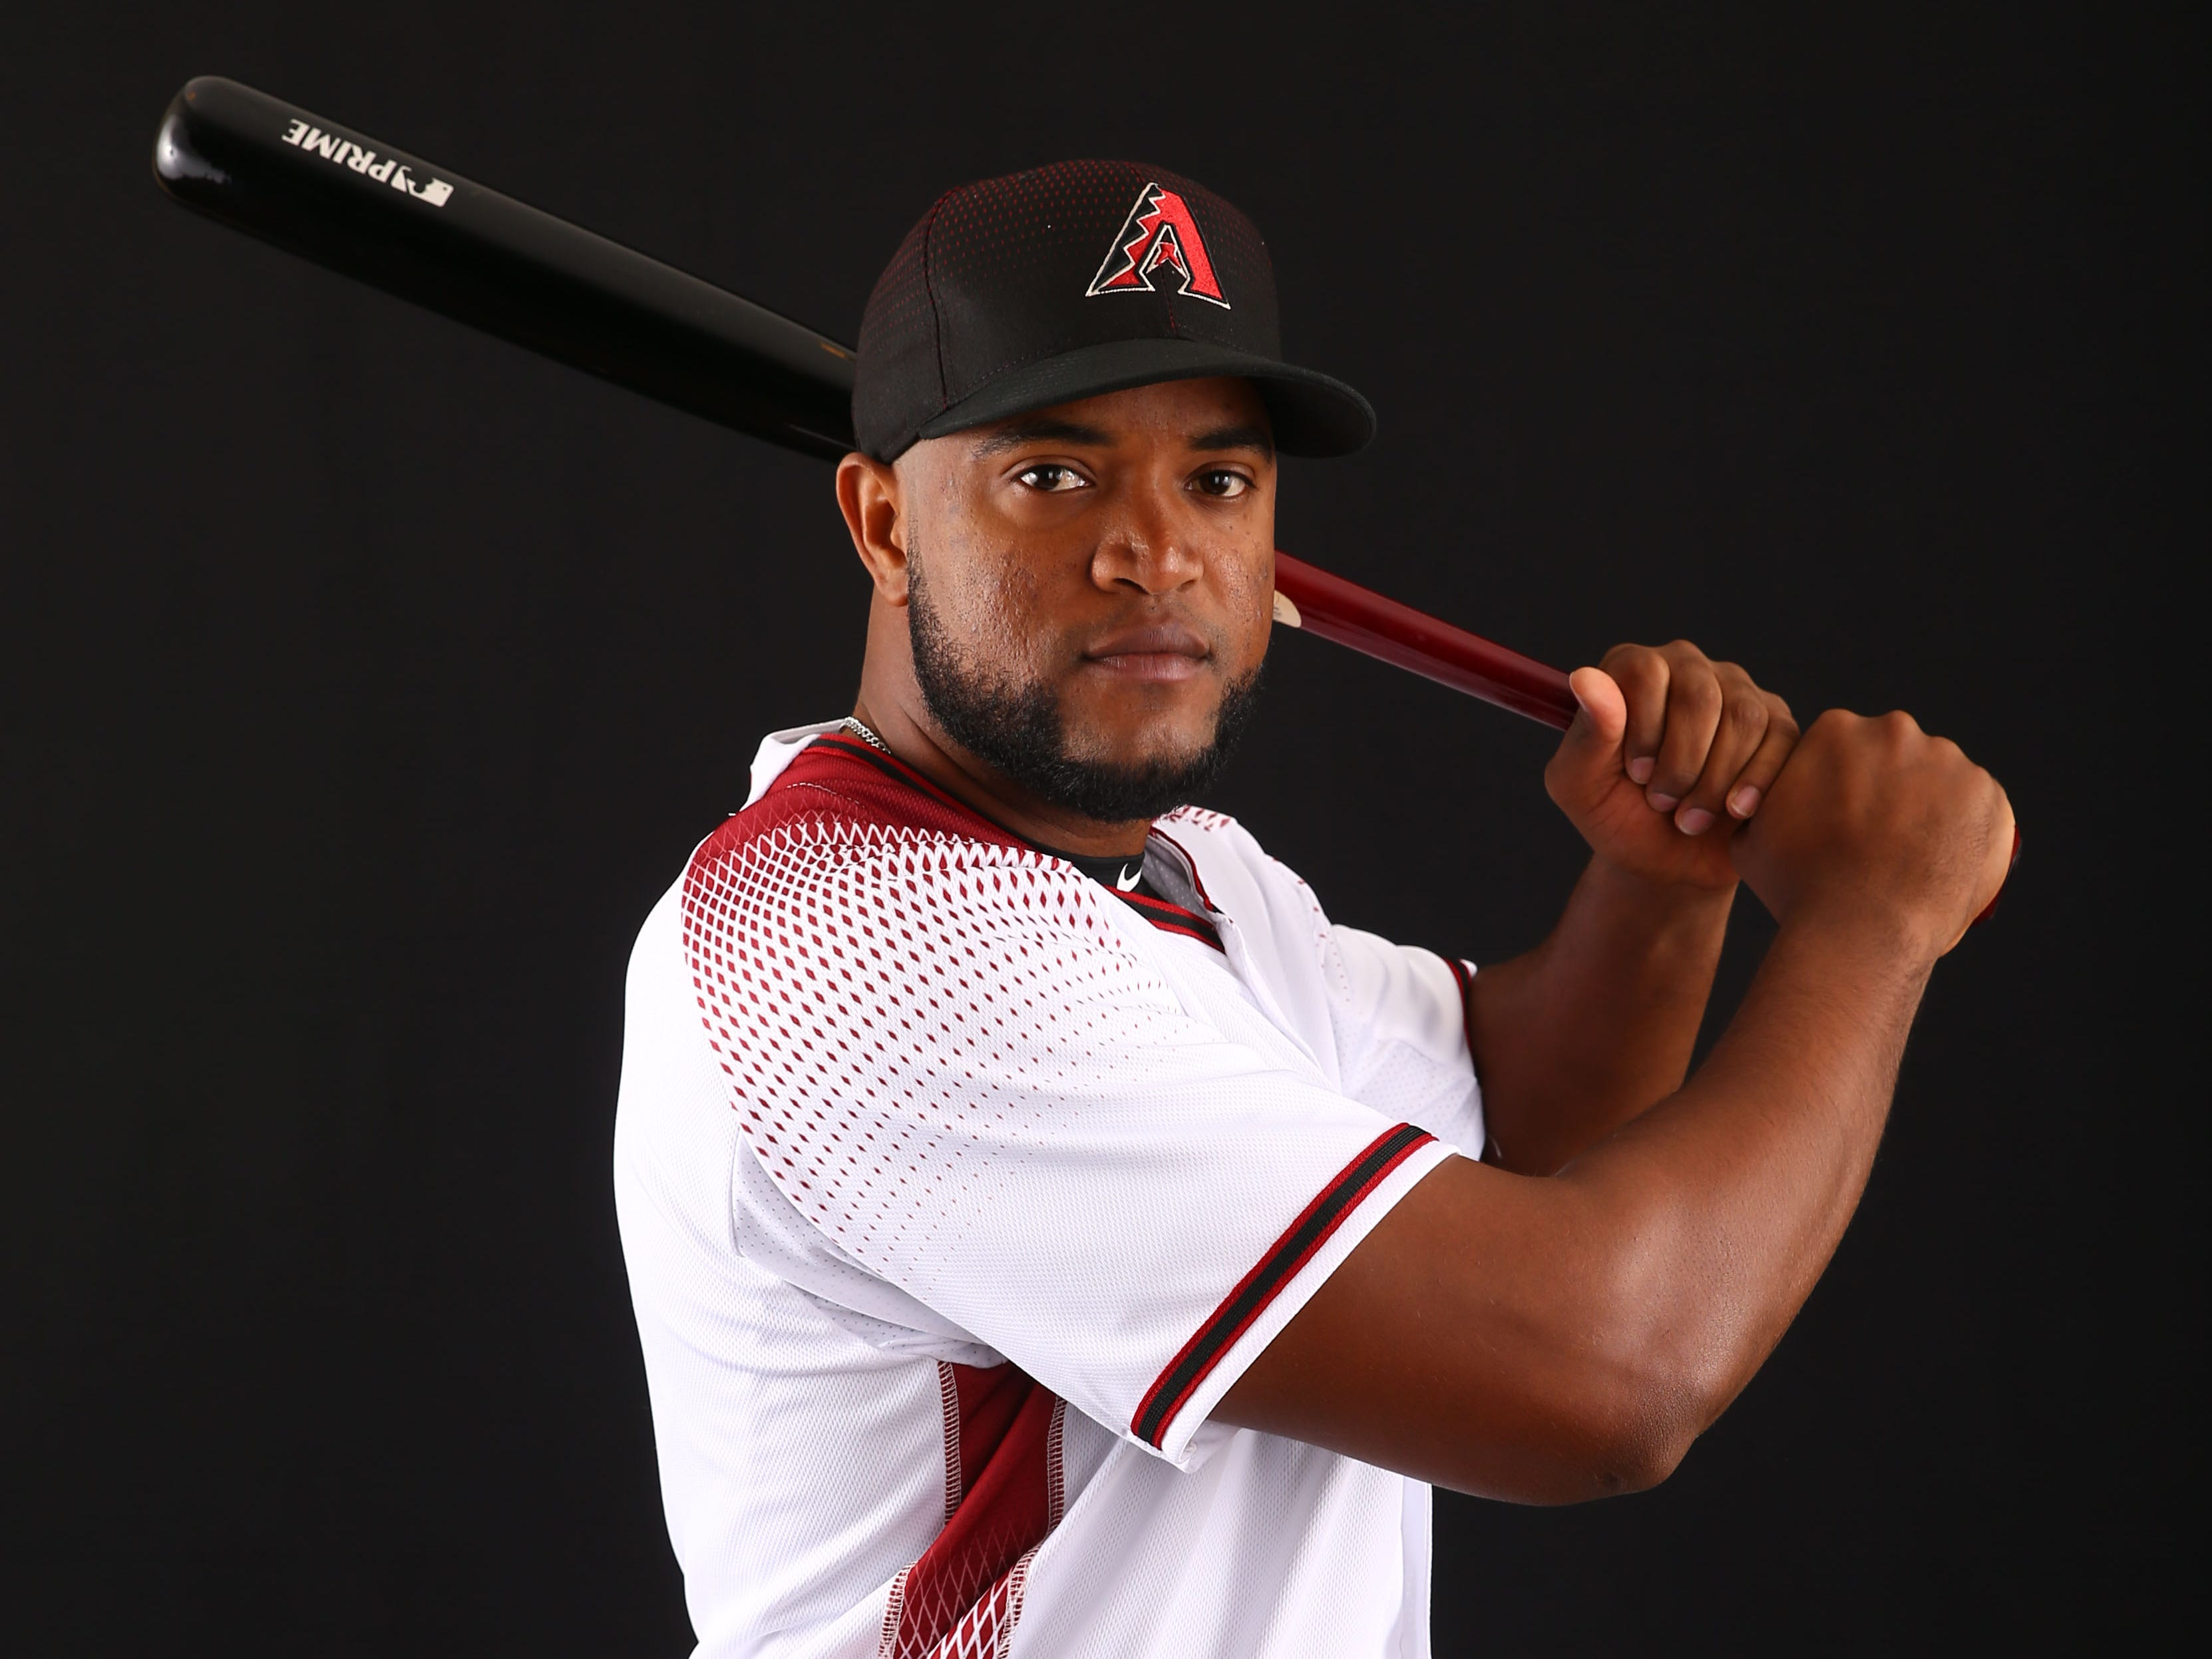 Socrates Brito of the Arizona Diamondbacks poses for a photo during the annual Spring Training Photo Day on Feb. 20 at Salt River Fields in Scottsdale, Ariz.